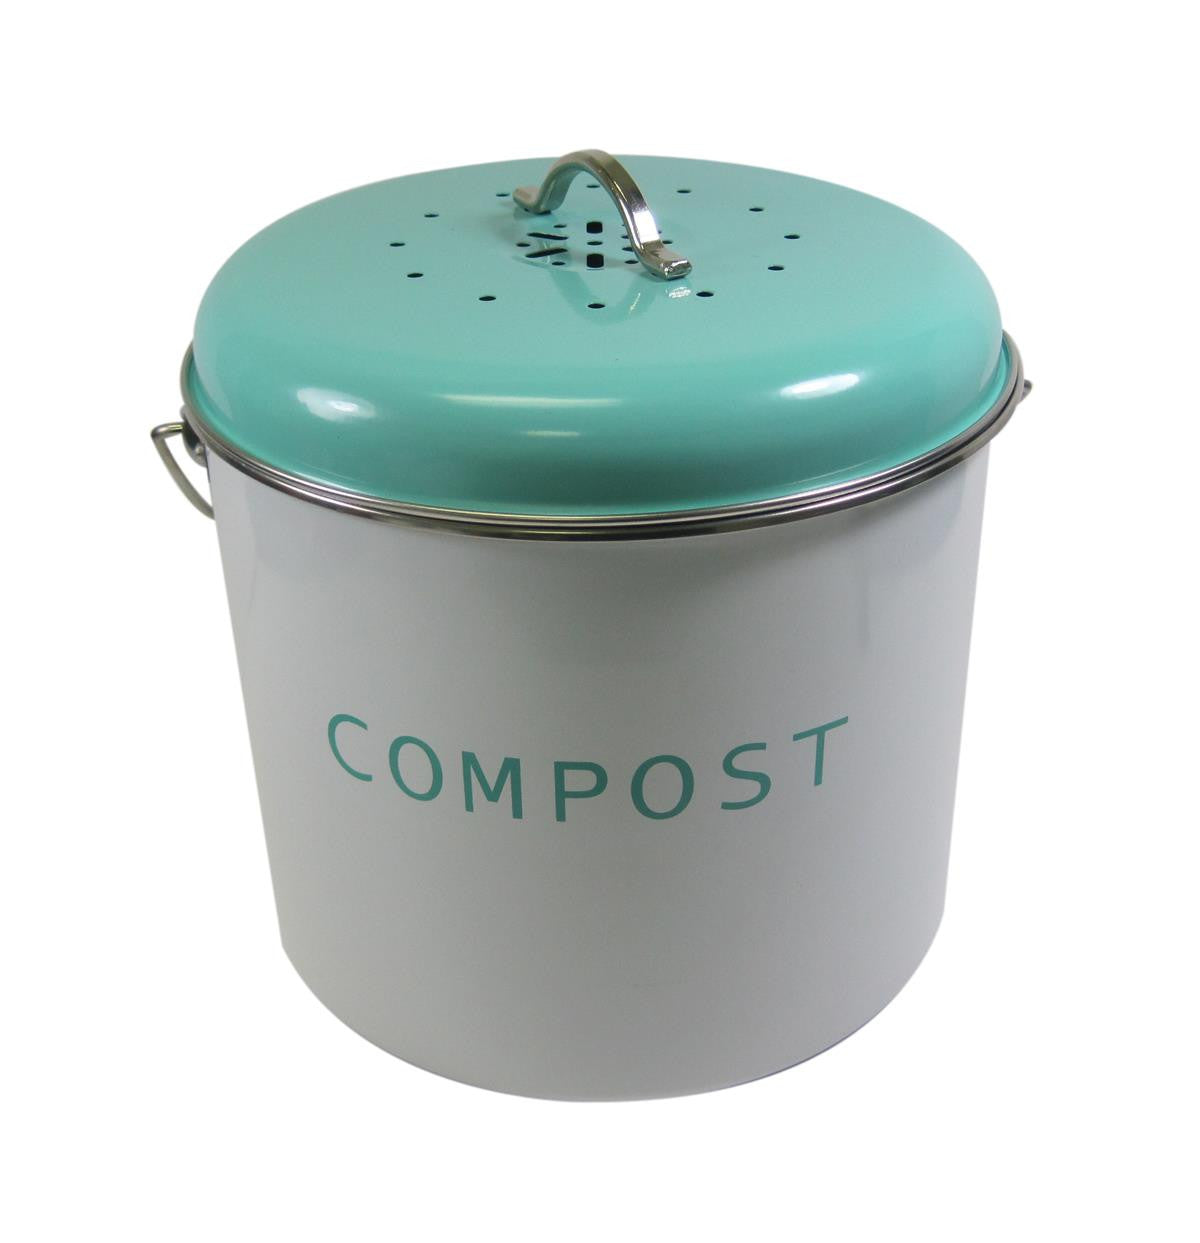 Kitchen Basics Compost Bin, Teal Blue and White